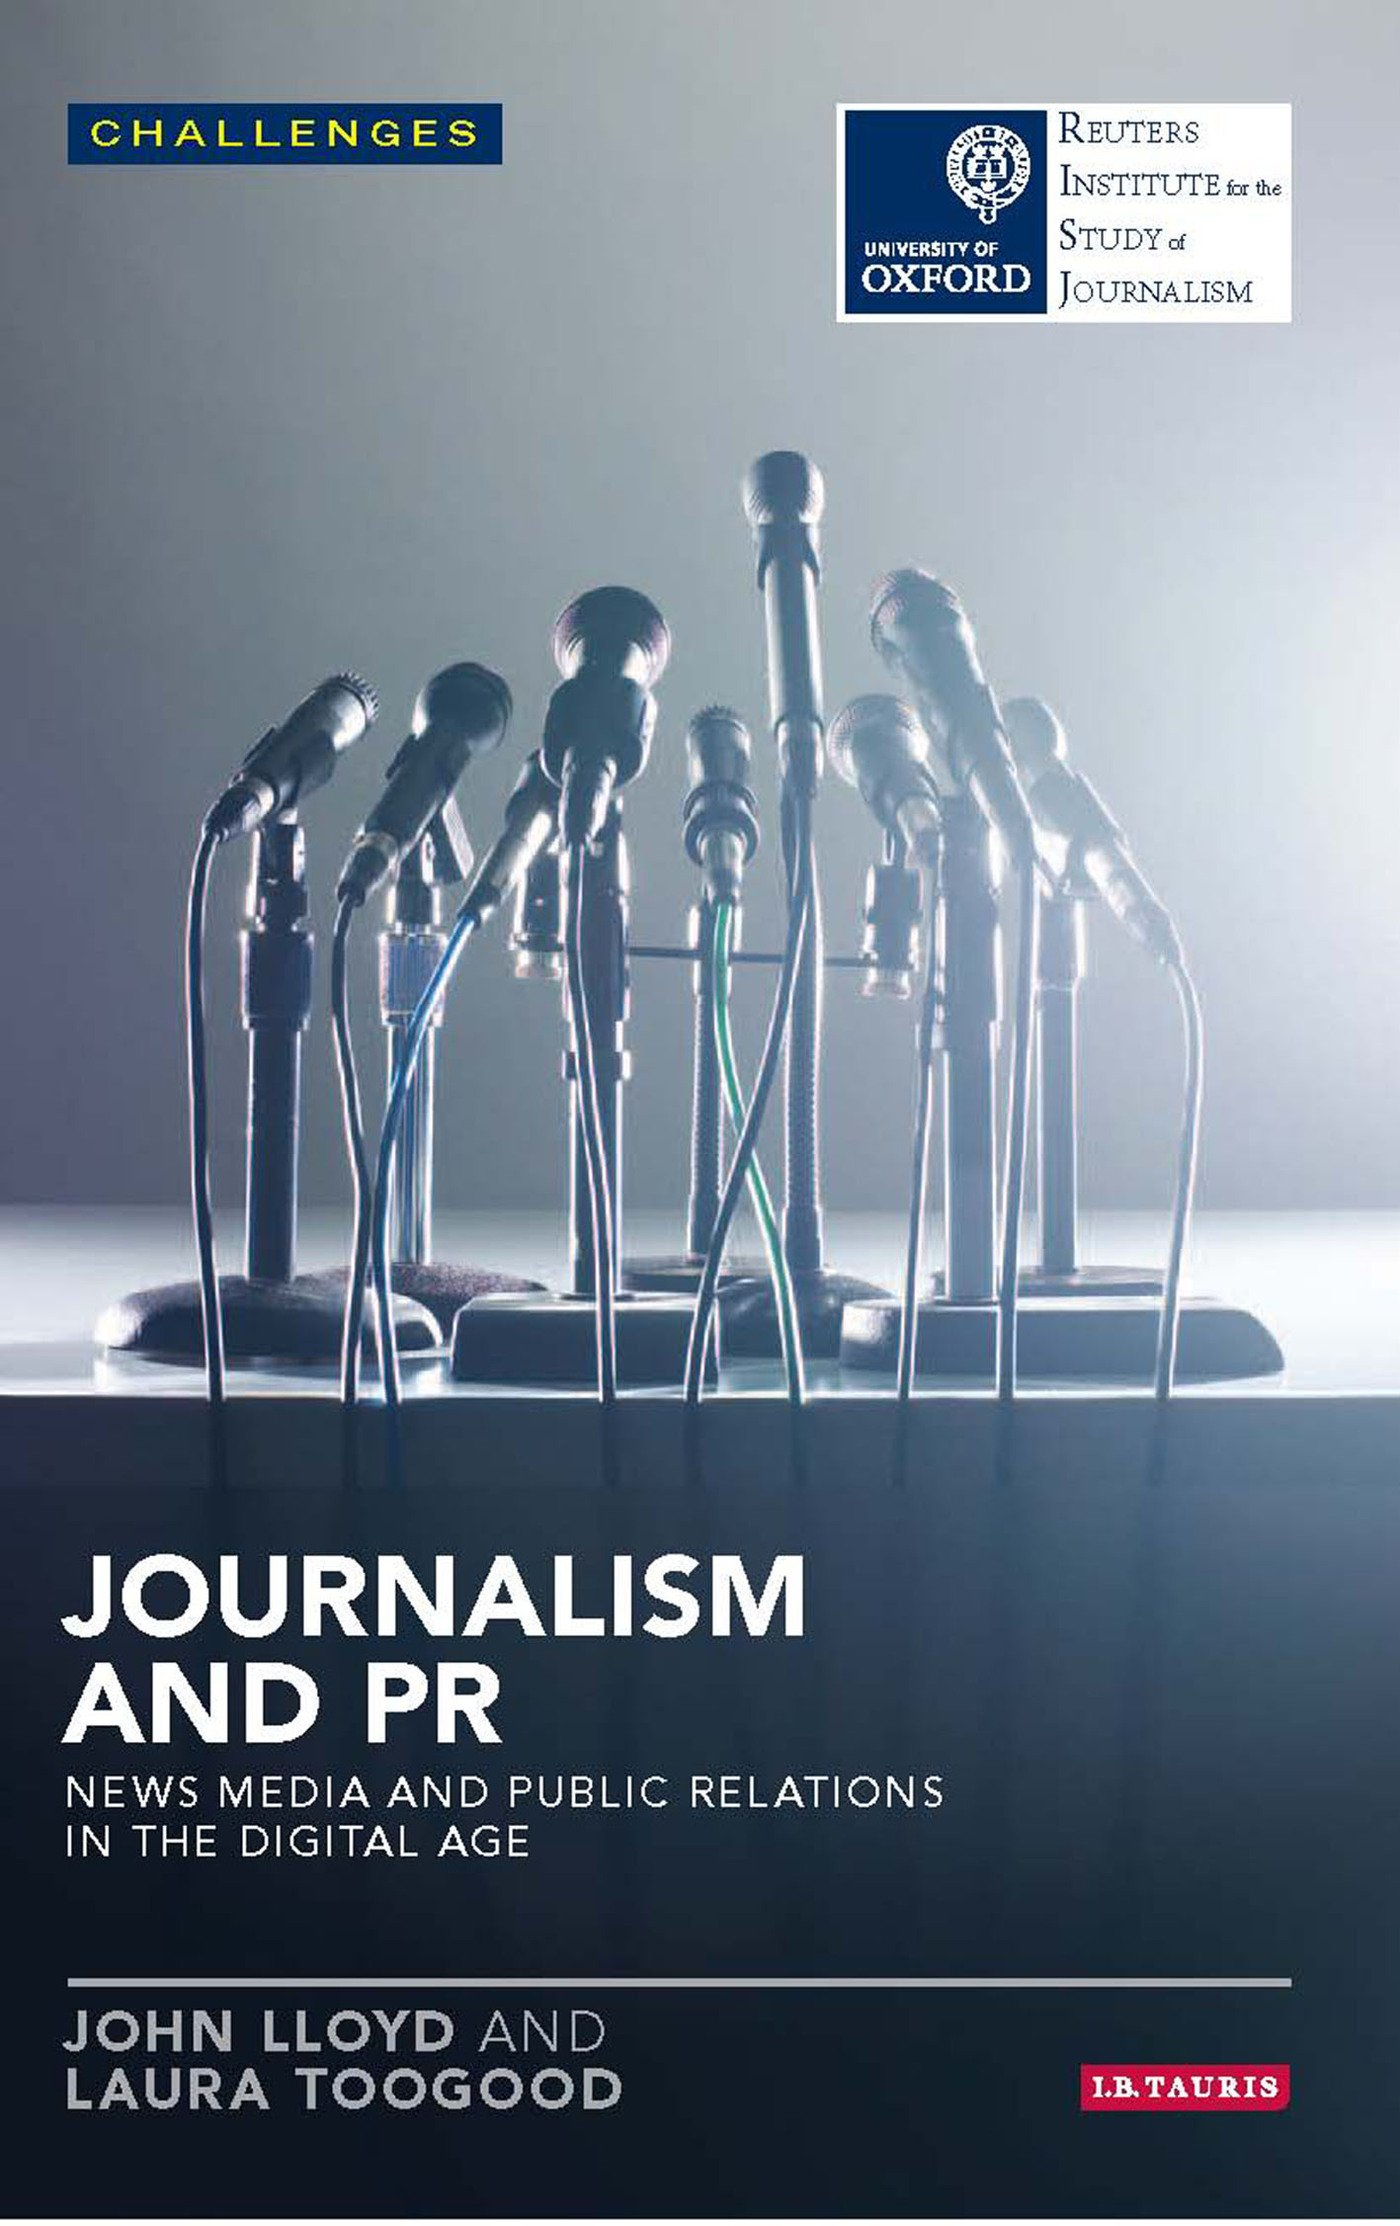 John Lloyd and Laura Toogood's upcoming publication Journalism and PR: News Media and Public Relations in the Digital Age